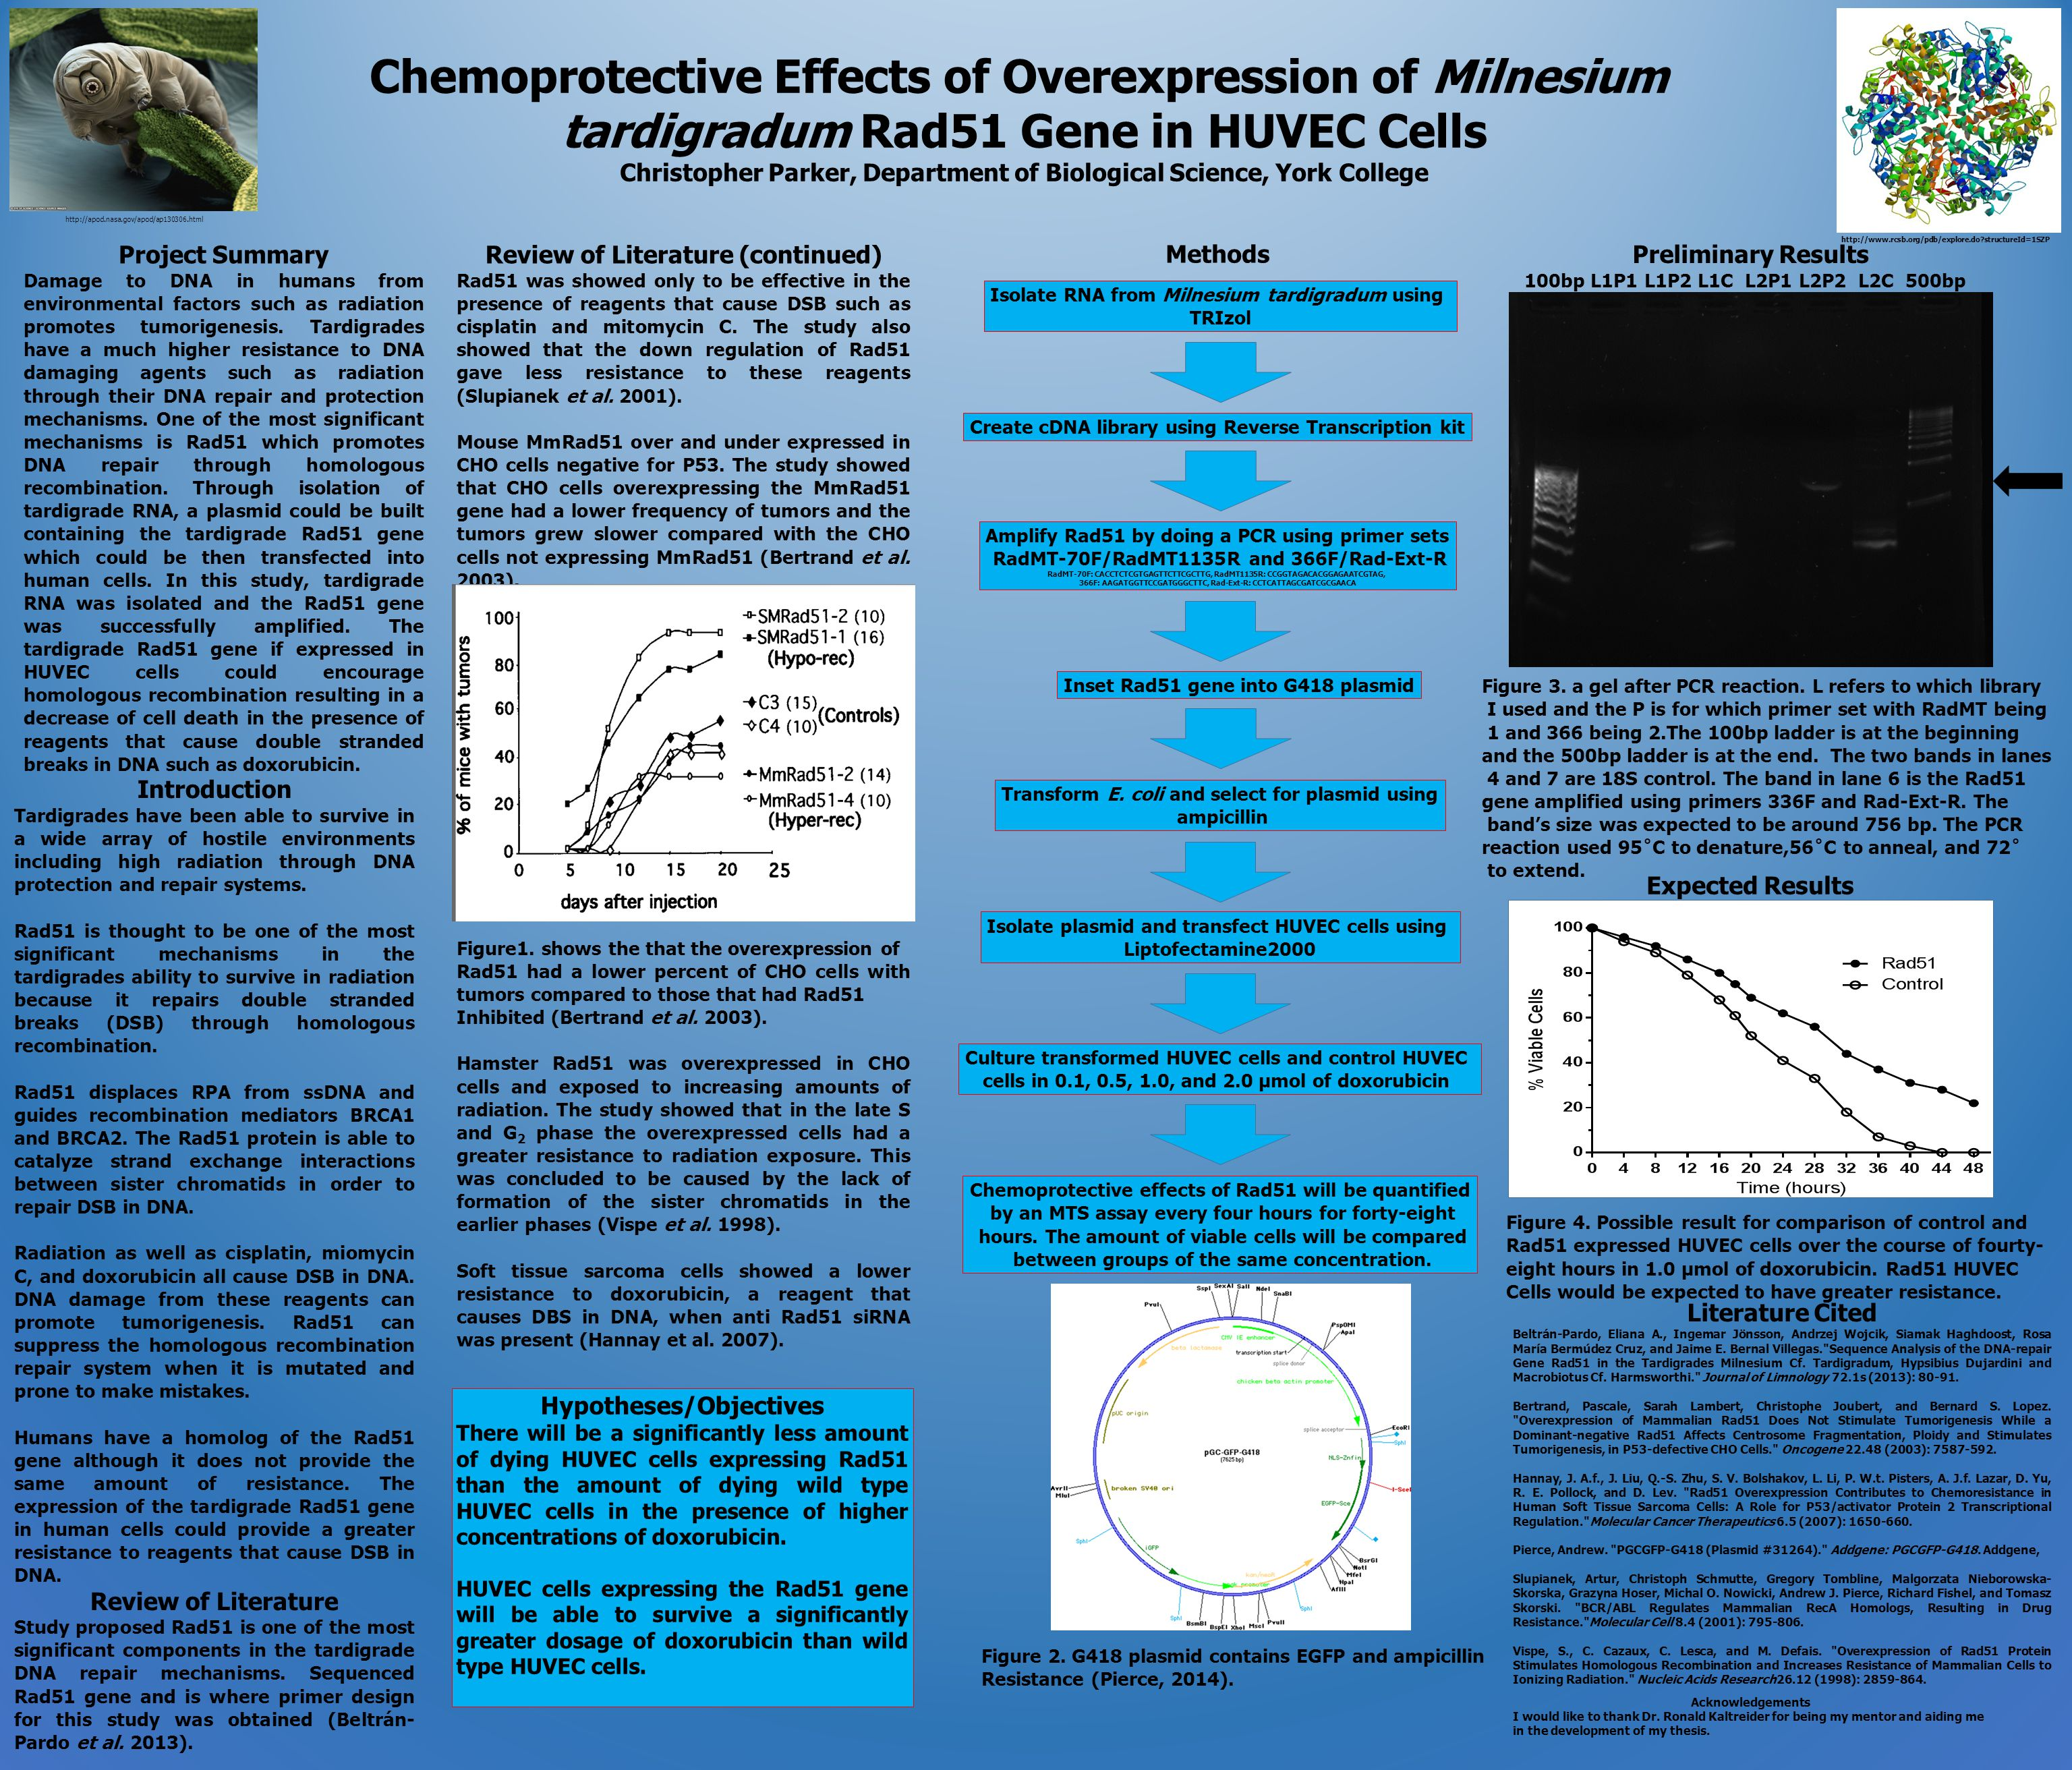 Chemoprotective Effects of Overexpression of Milnesium tardigradum Rad51 Gene in HUVEC Cells Christopher Parker, Department of Biological Science, Yor